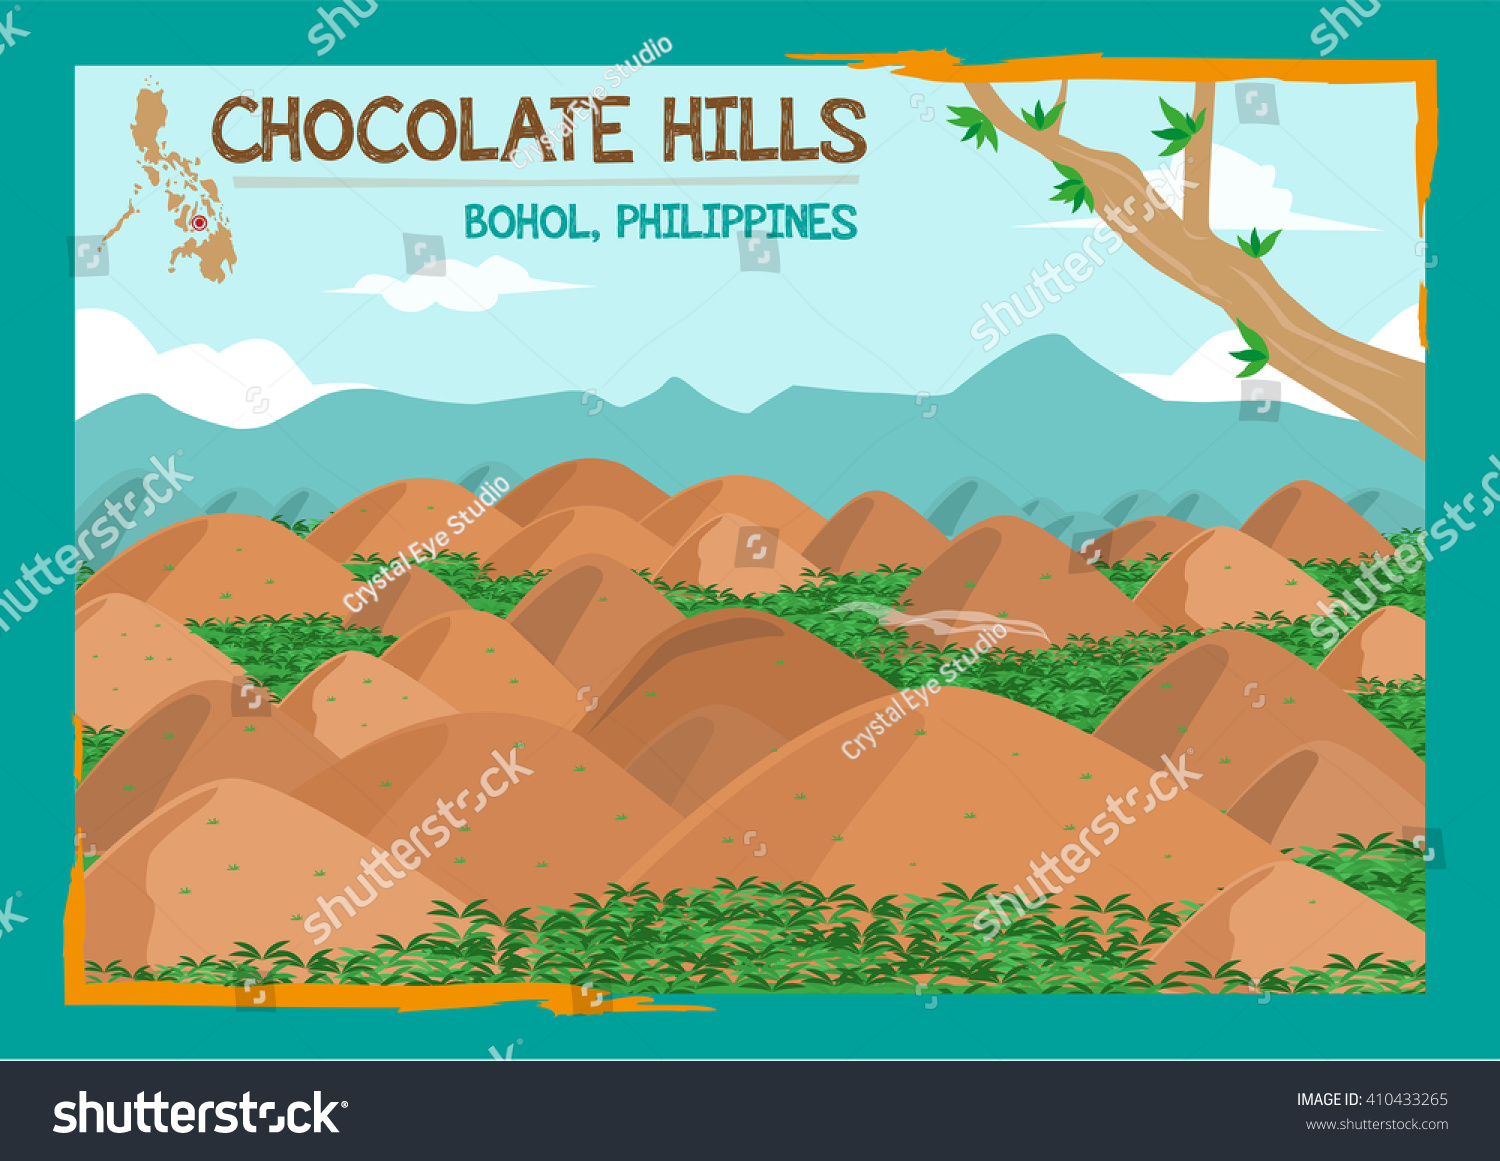 Chocolate Hills Formation Located Bohol Philippines Stock Vector ...